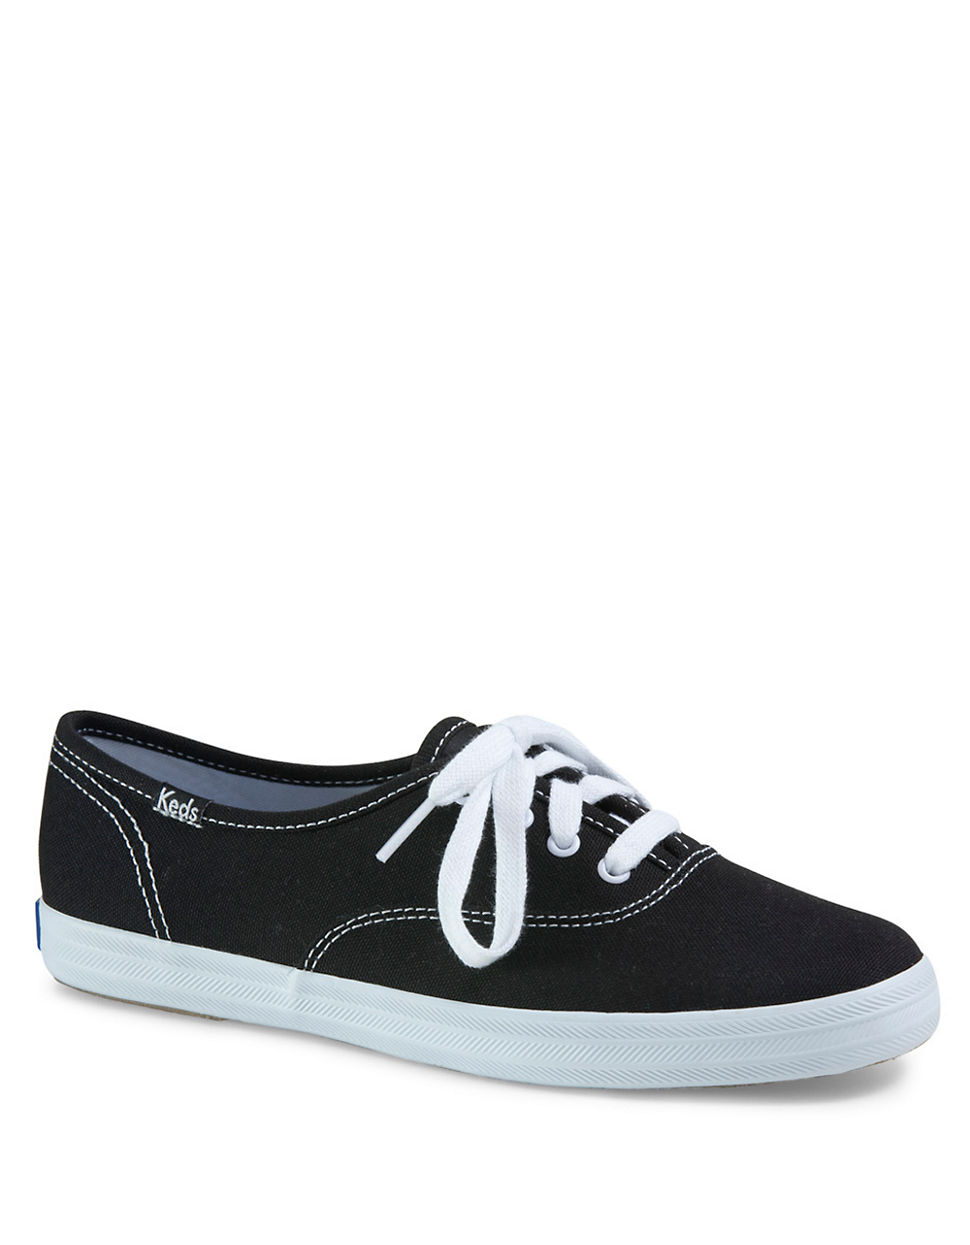 Should White Shoes Be Leather Or Canvas